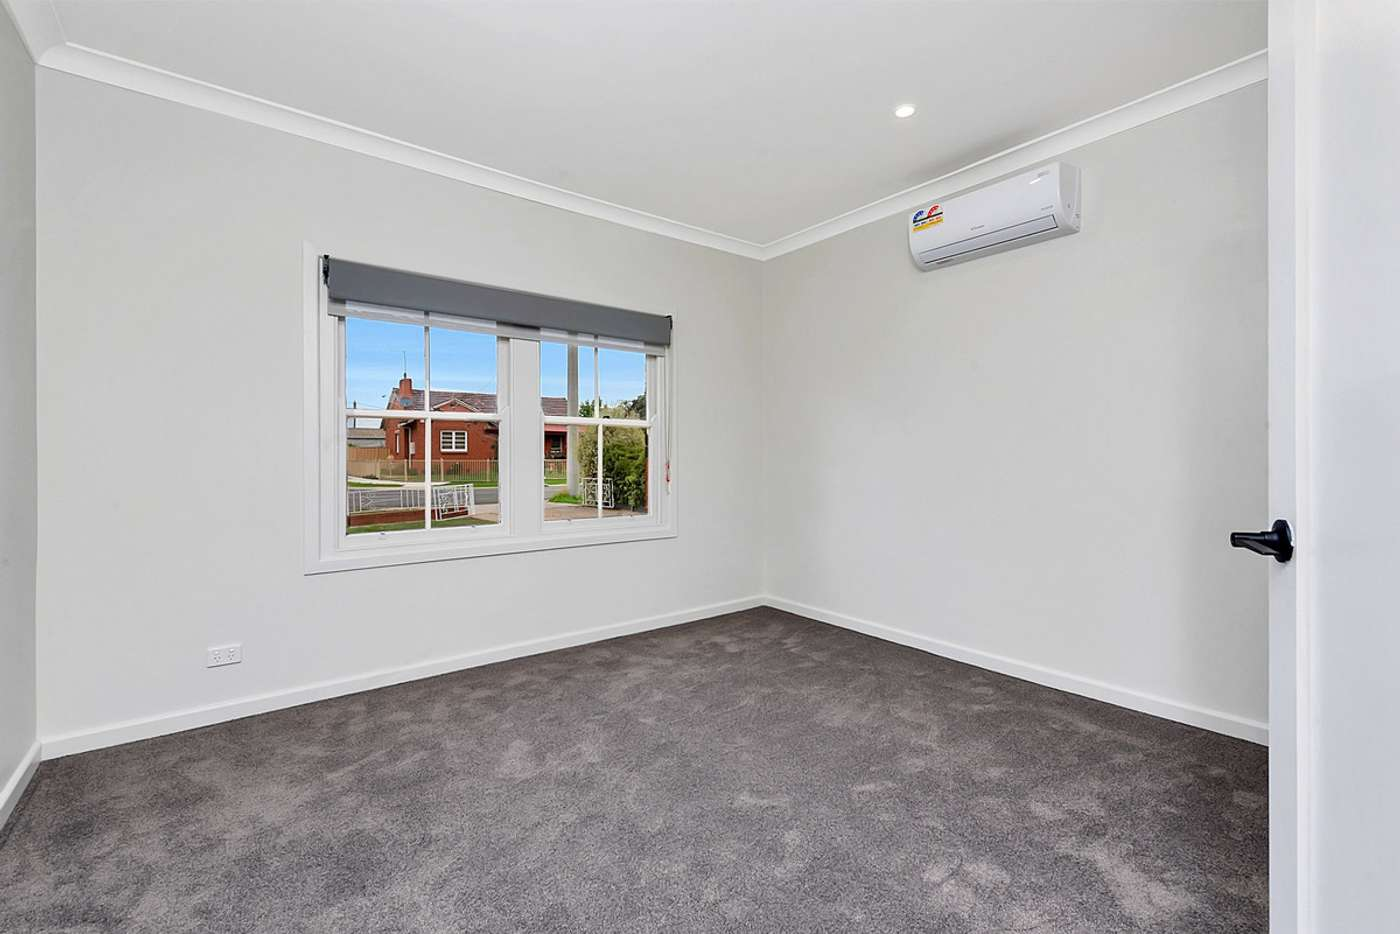 Sixth view of Homely house listing, 18 Smith Crescent, Wangaratta VIC 3677